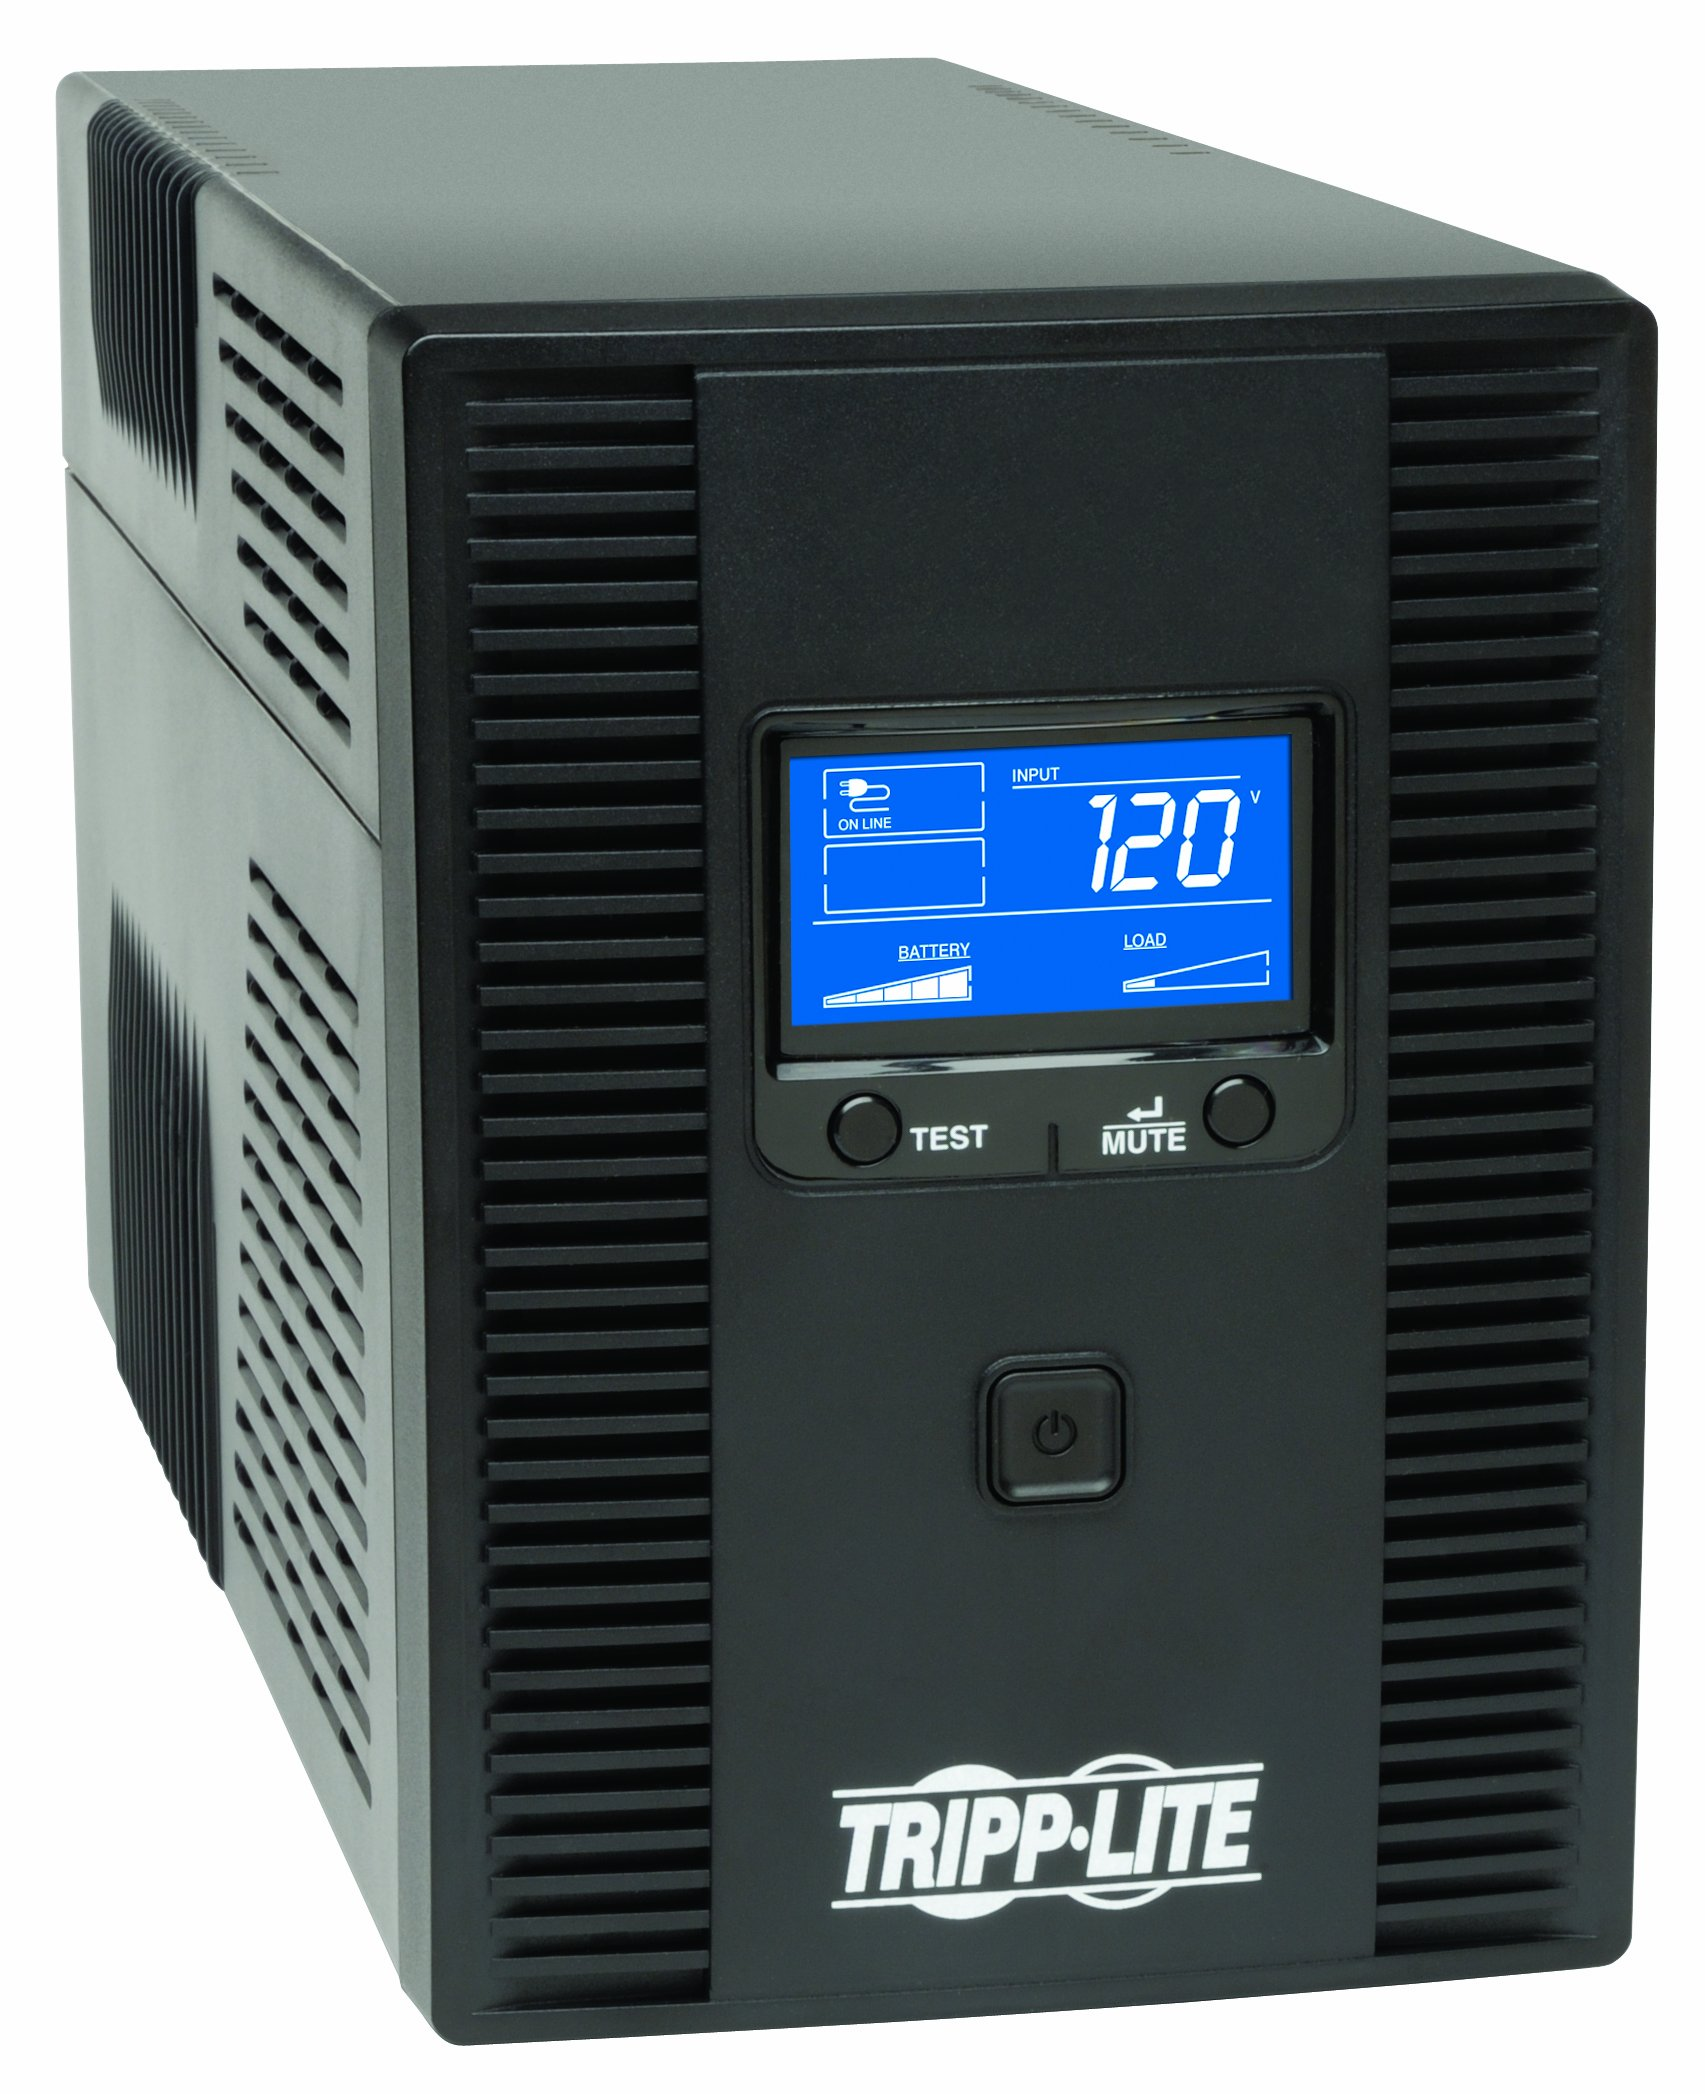 Tripp Lite 1500VA 900W UPS Battery Back Up, AVR, LCD Display, Line-Interactive, 10 Outlets, 120V, USB, Tel & Coax Protection (SMART1500LCDT) by Tripp Lite